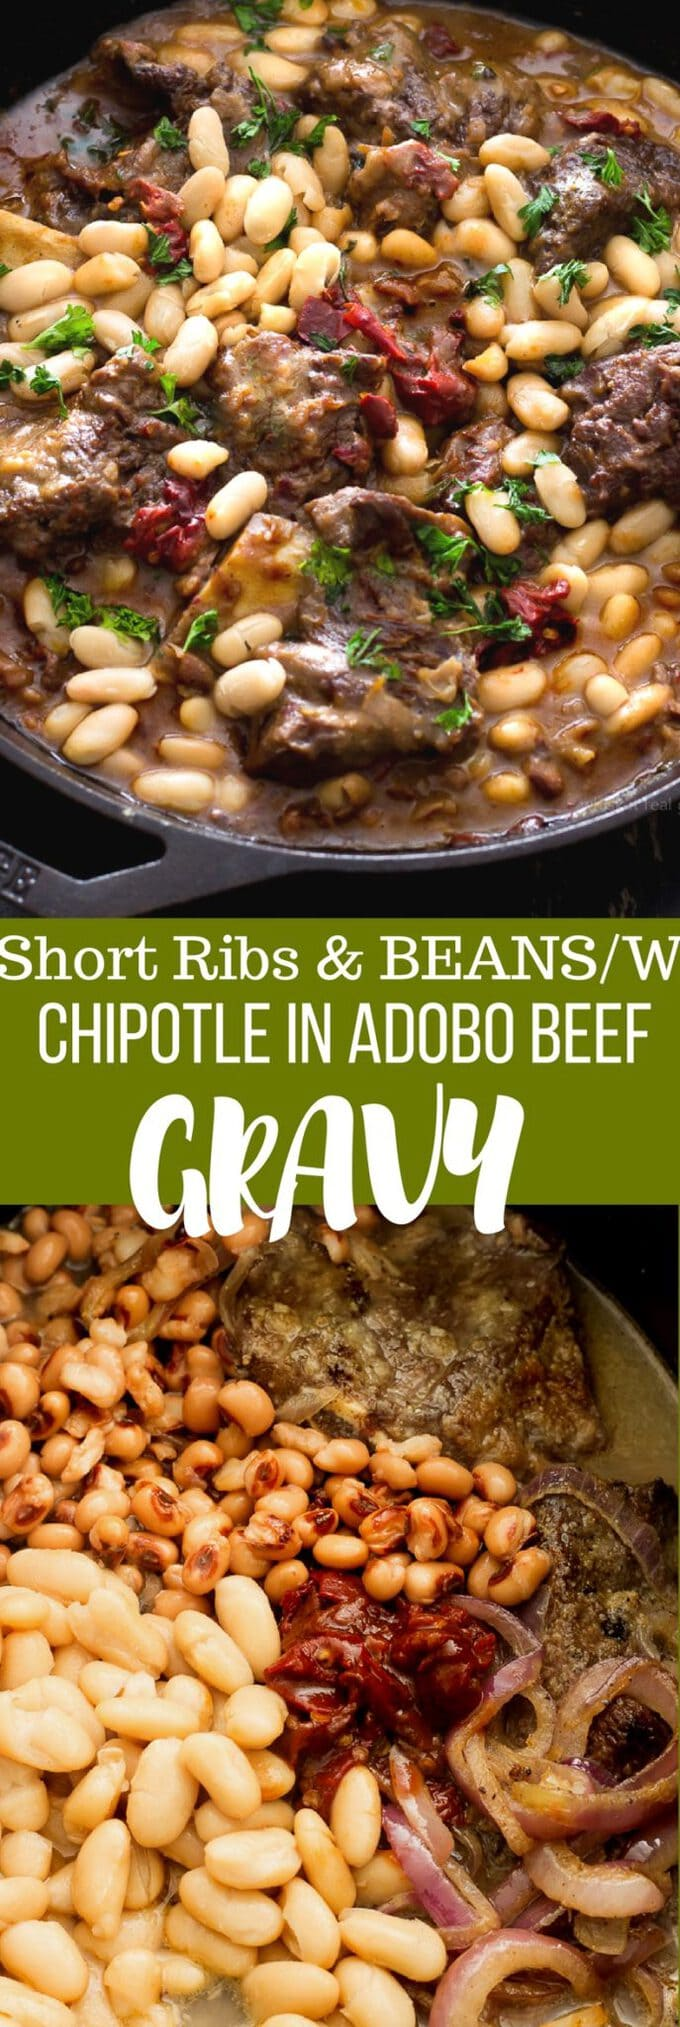 Braised short ribs, black eyed peas and cannellini beans slow cooked in beef broth, onions and chipotle in adobe sauce, until tender and falling off the bones. The braised ribs cook down to a nice rich and flavorful spicy chipotle beef gravy. These quick prep braised short ribs are so simple to make. Start your slow cooker the night before or early in the morning. Cook on low for 8hours...then come home from work and enjoy a delicious hearty, protein filled comforting meal! Serve with hot buttered cornbread. The perfect meal for the cold weeknights ahead!